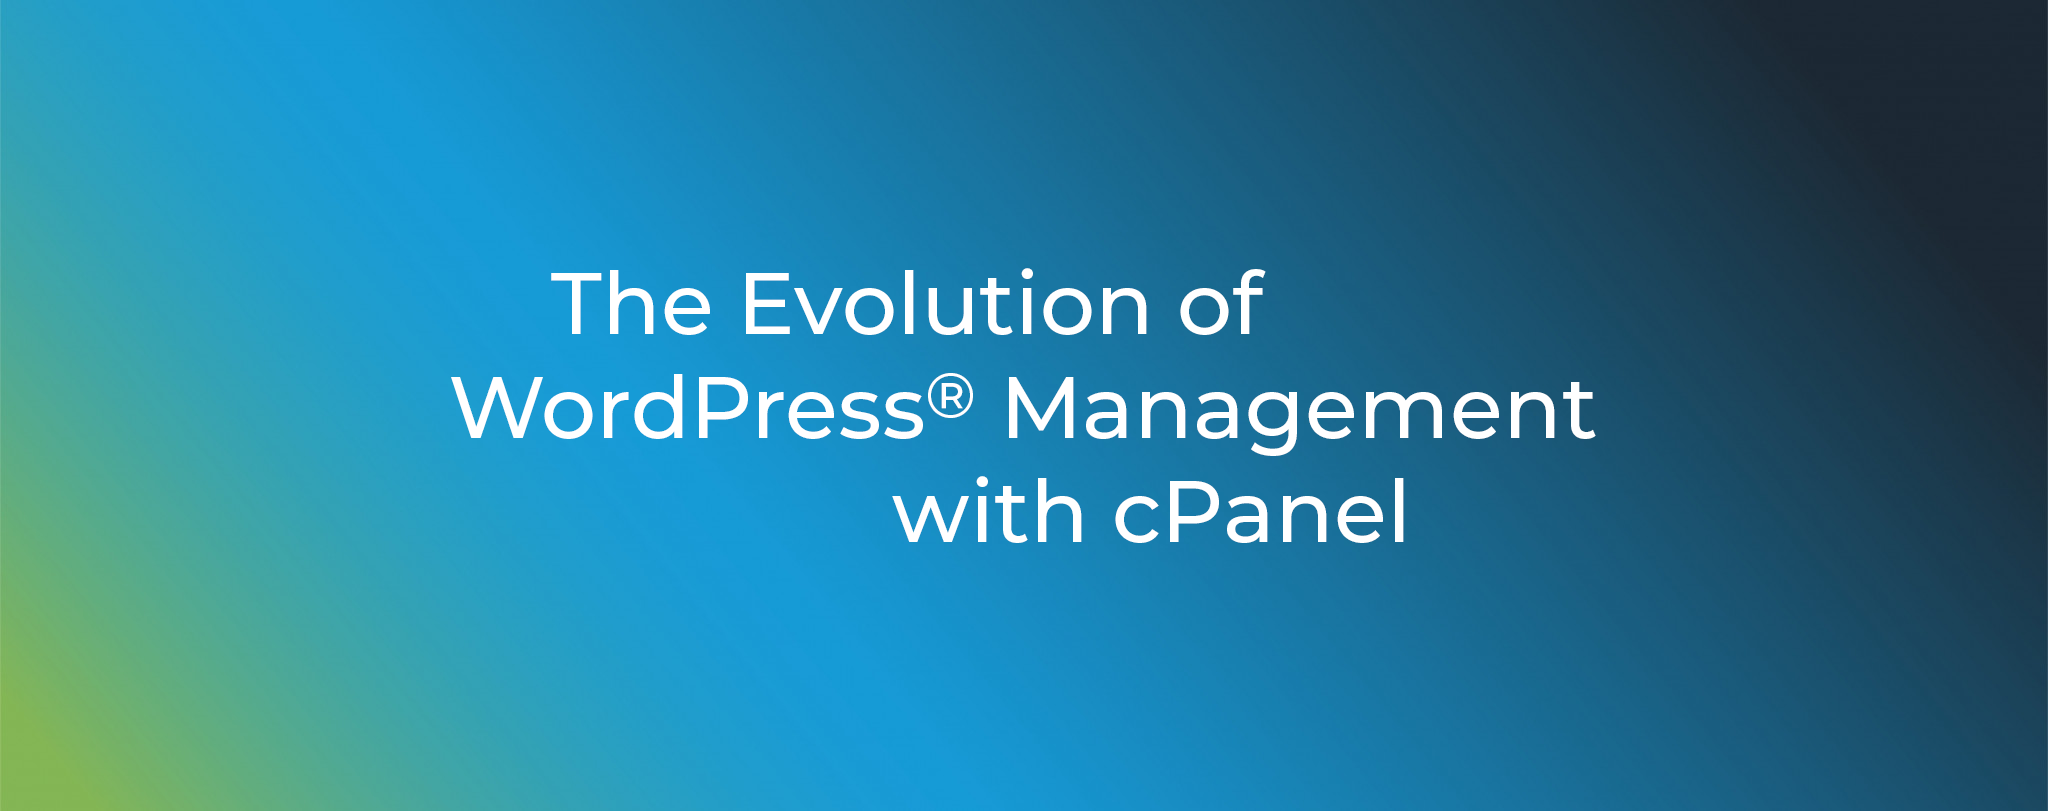 Evolution of WordPress Management with cPanel